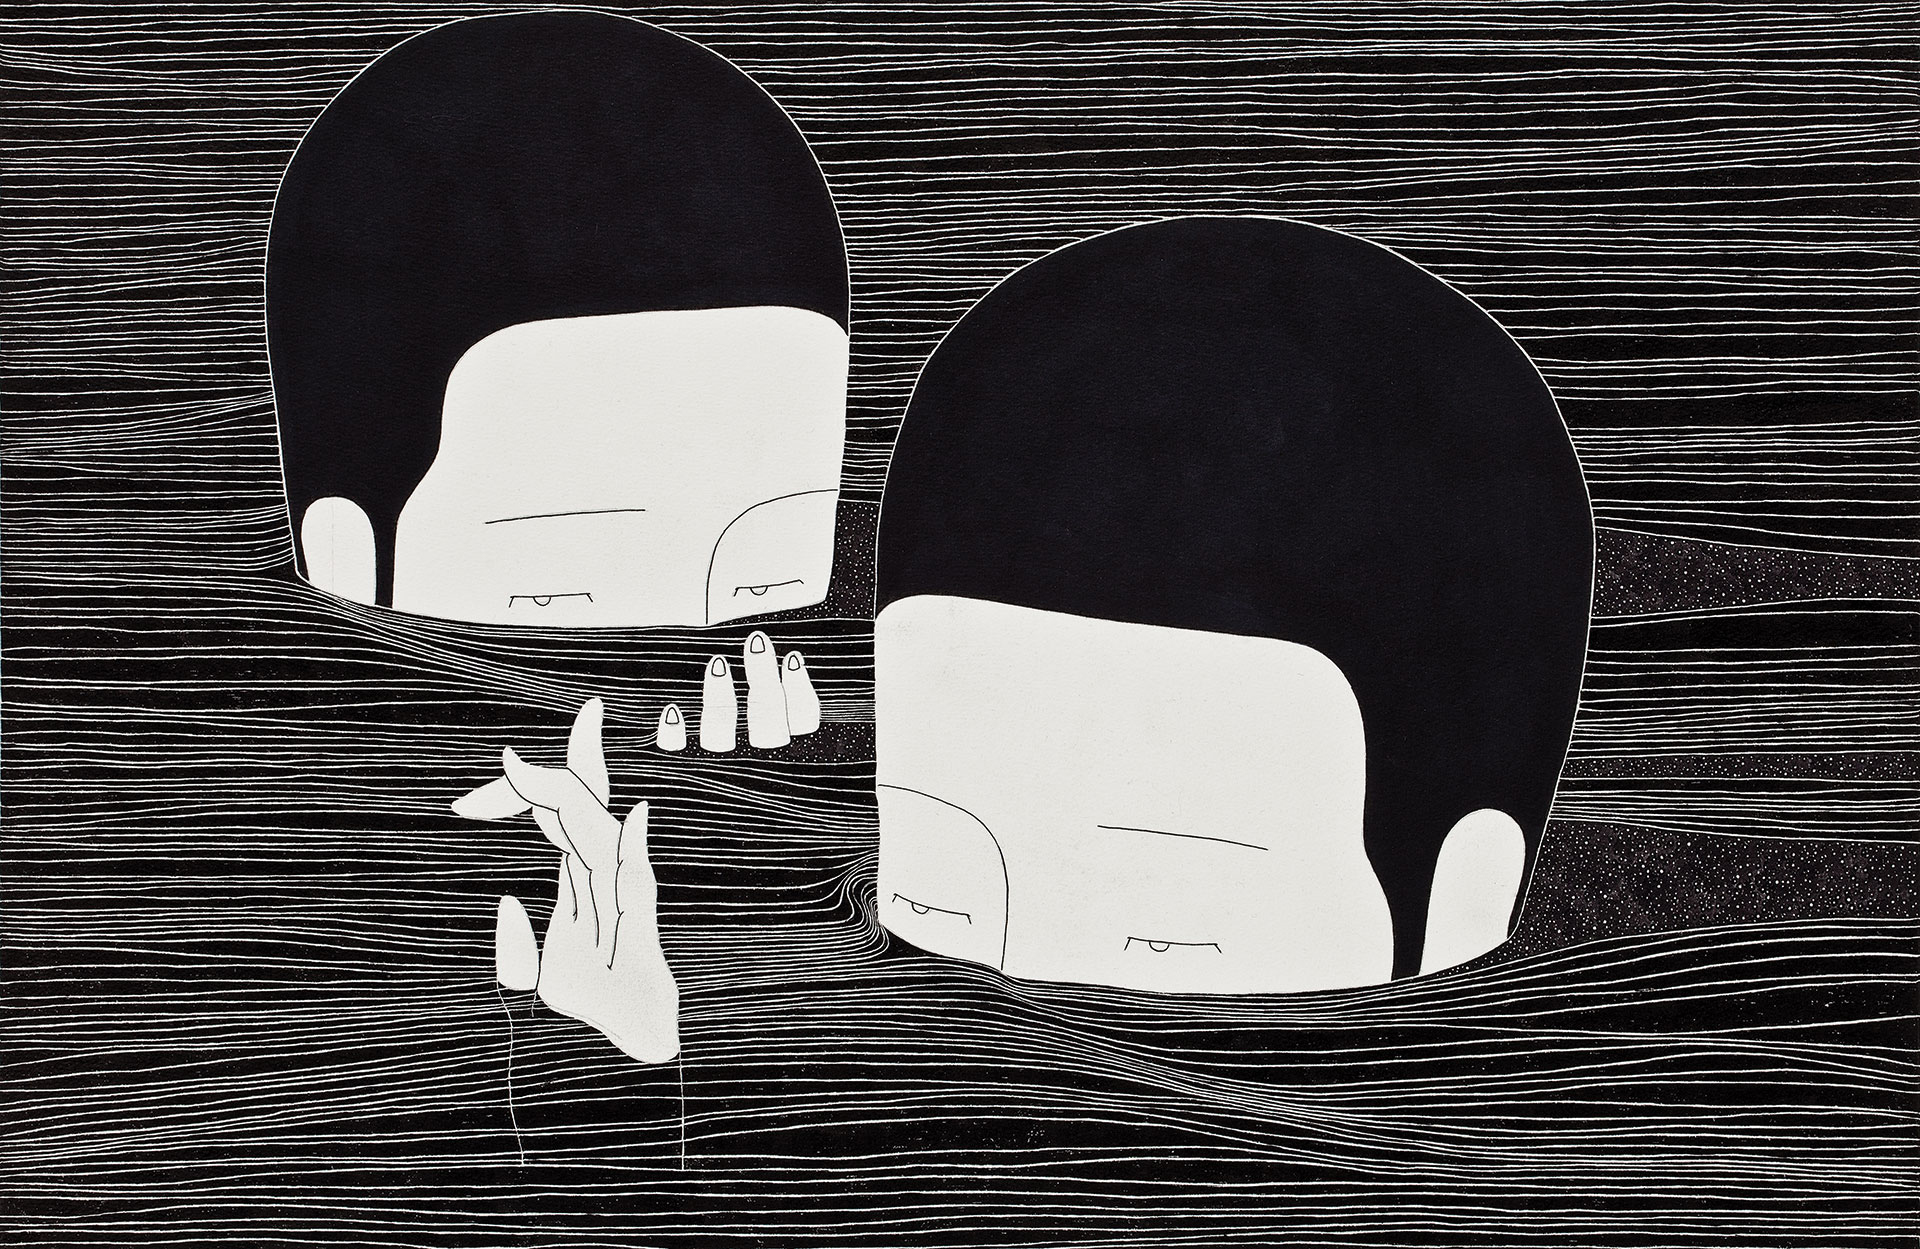 여기, 지금   /   Between the lines   Op. 0075F - 49.3 x 32 cm, 종이에 펜, 마커, 잉크 / Pigment liner, marker, and ink on paper, 2014   Asked by HNN